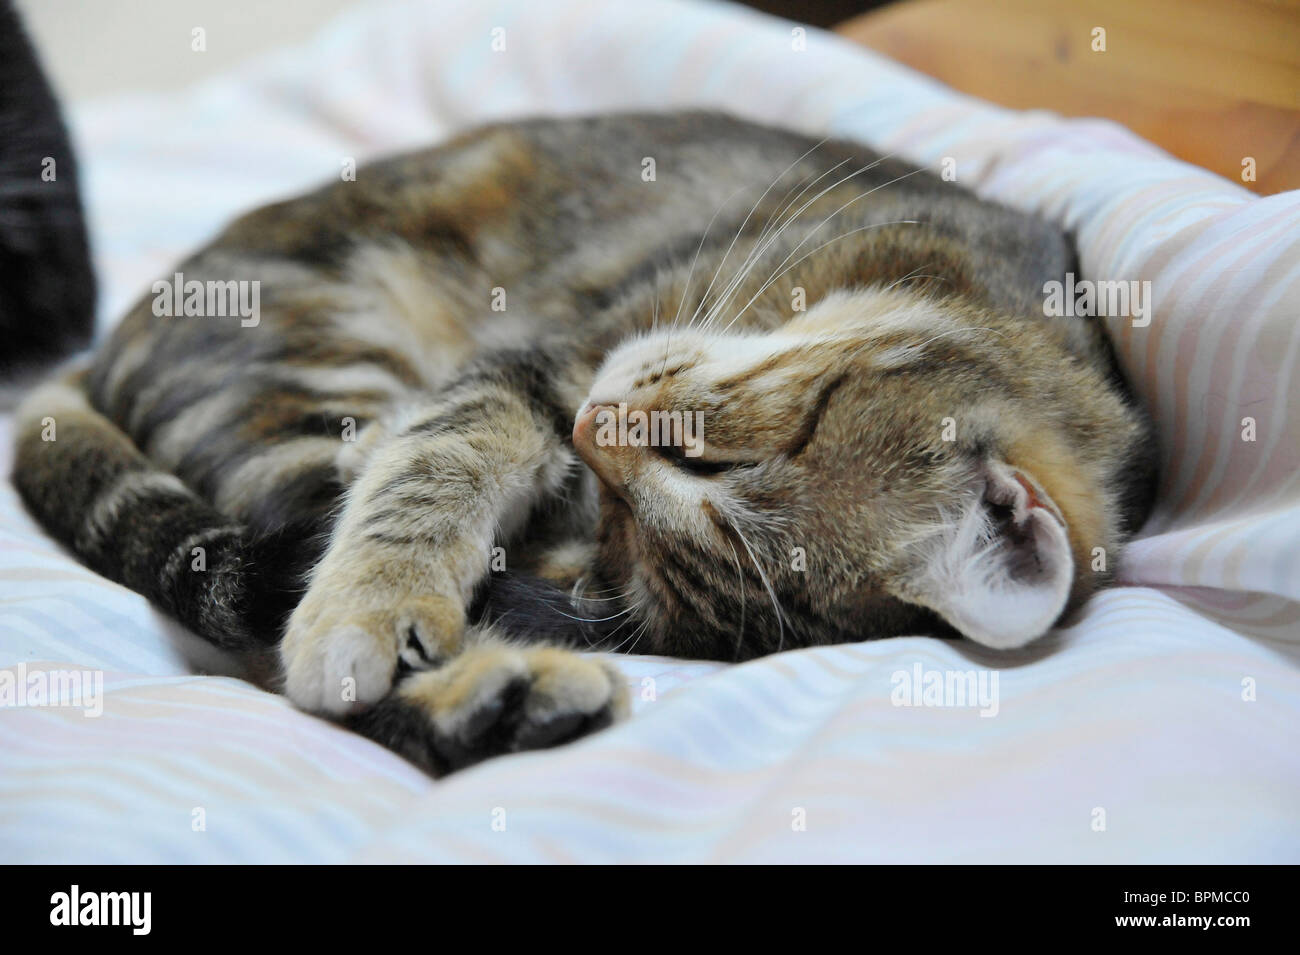 Funny animals young tabby cat sleeping